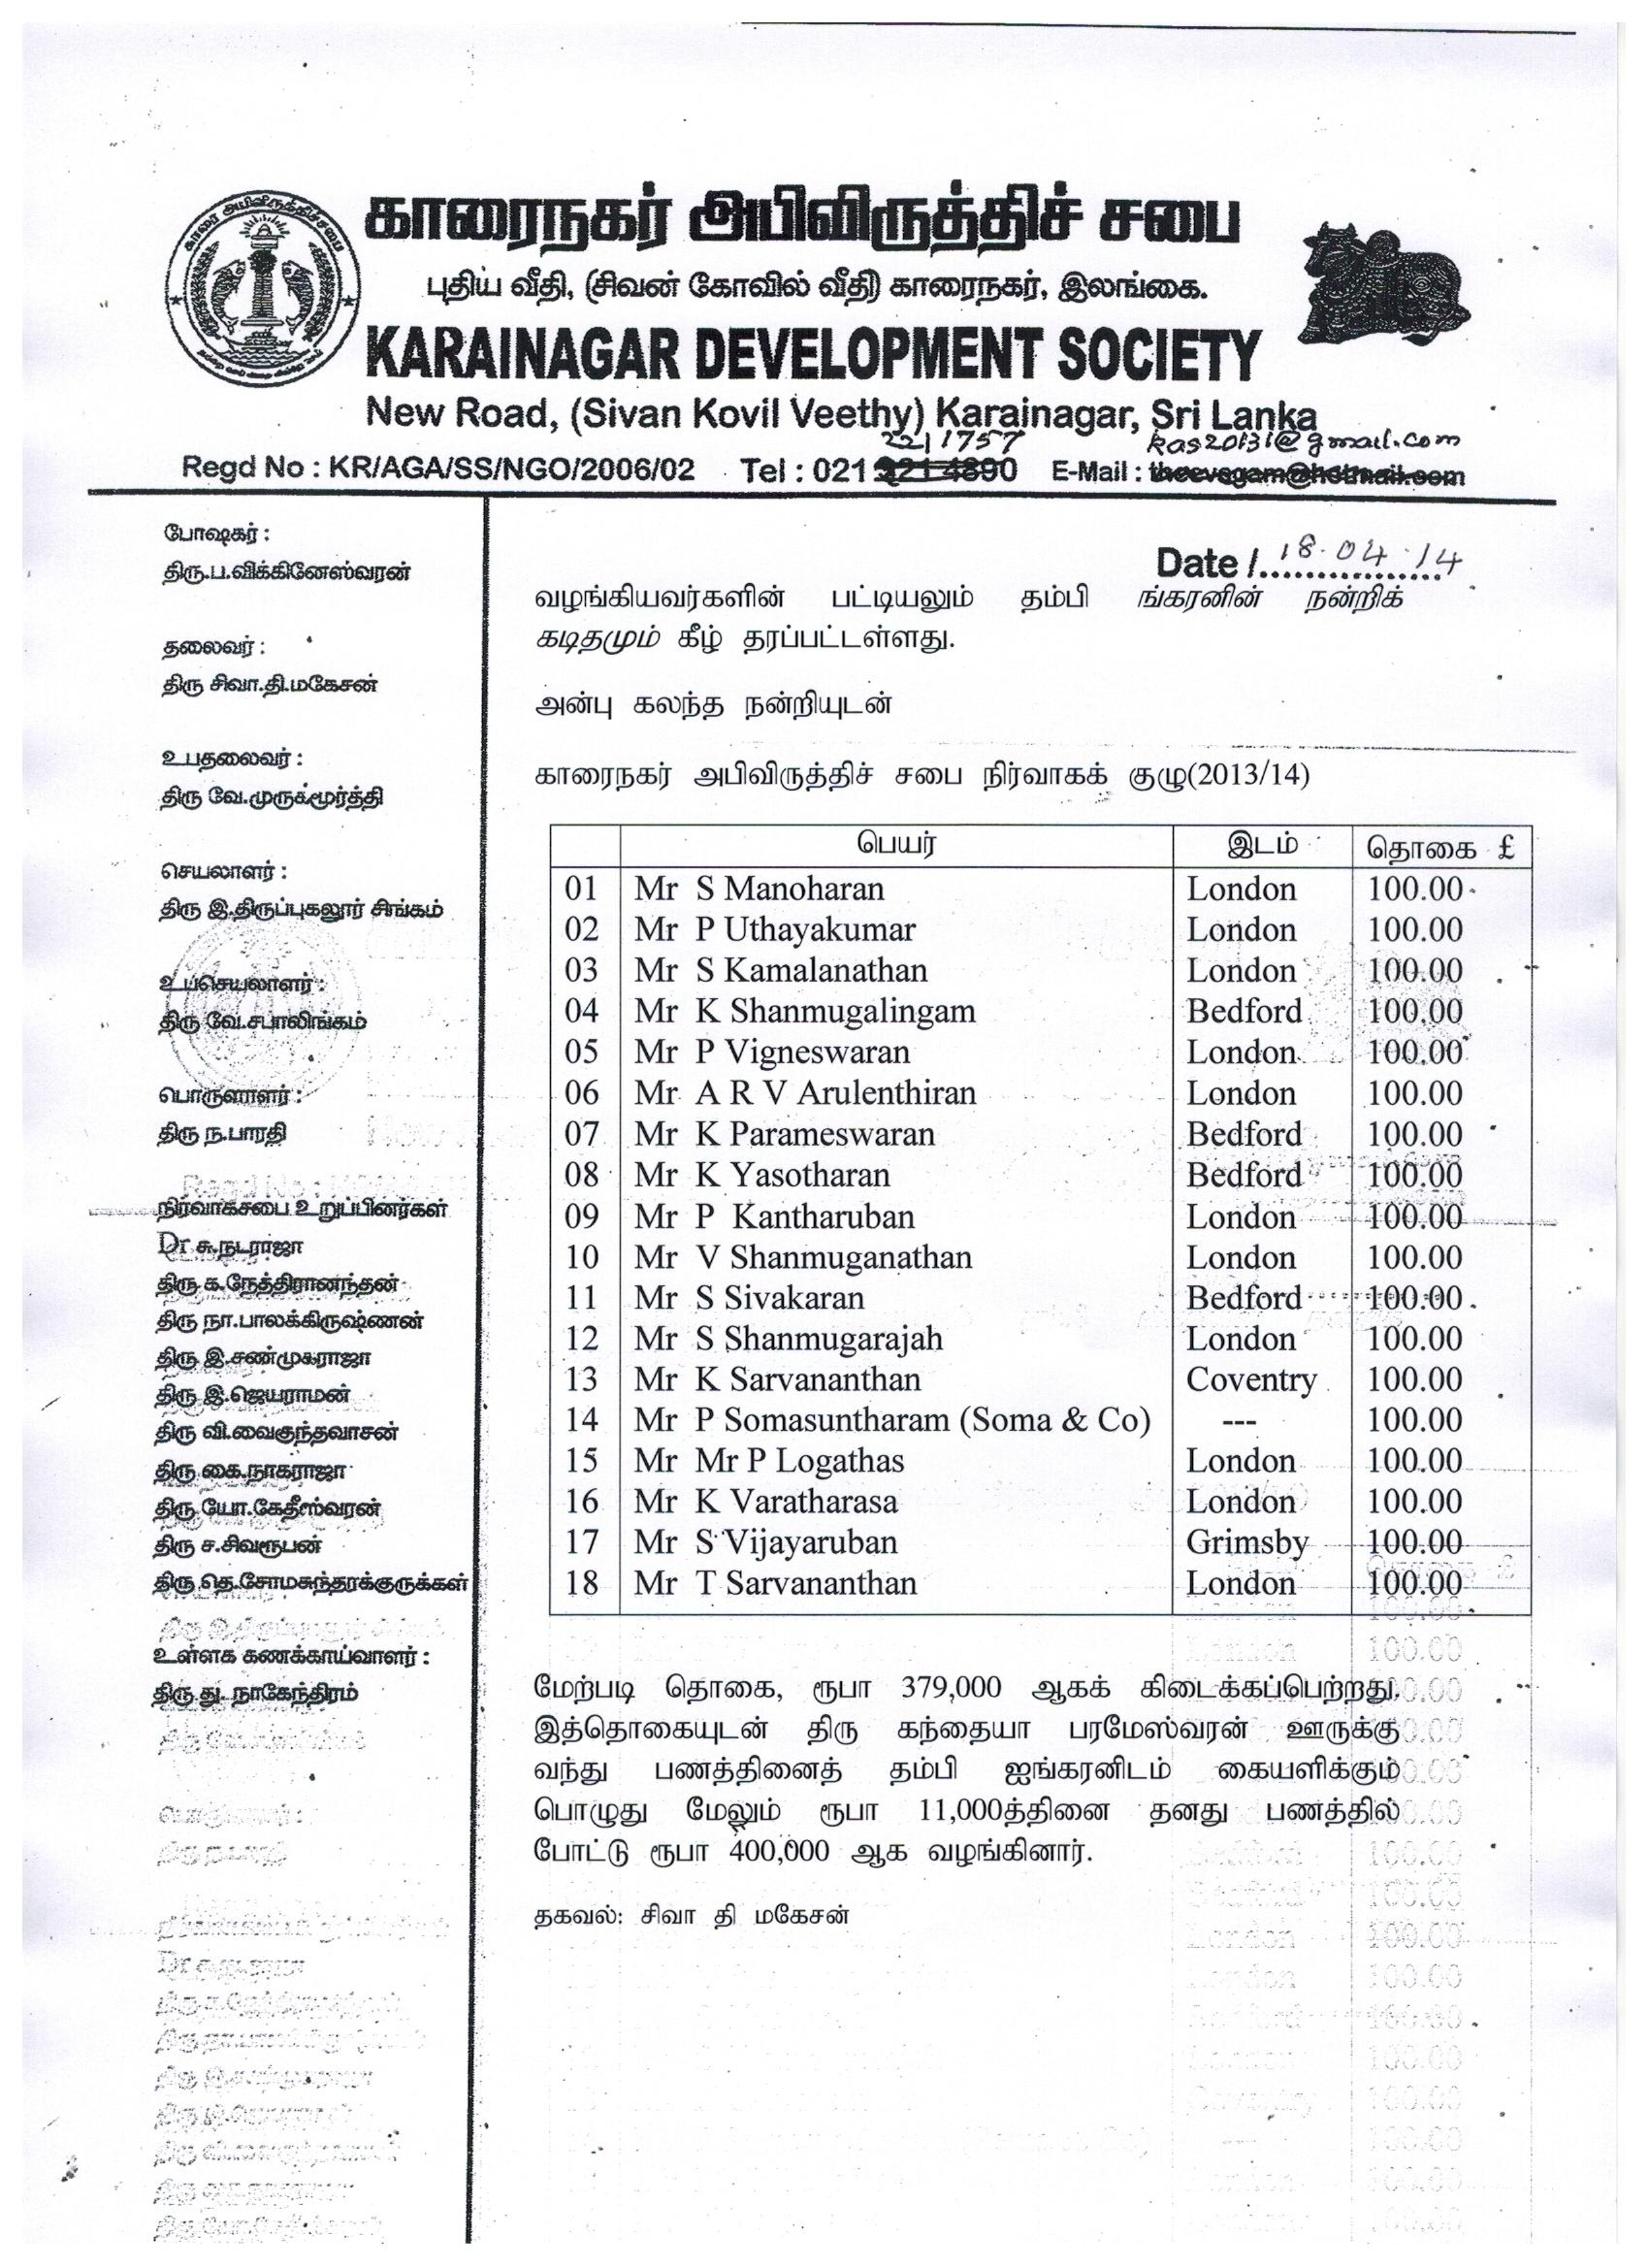 Ainkaran's Donation Letter page 2